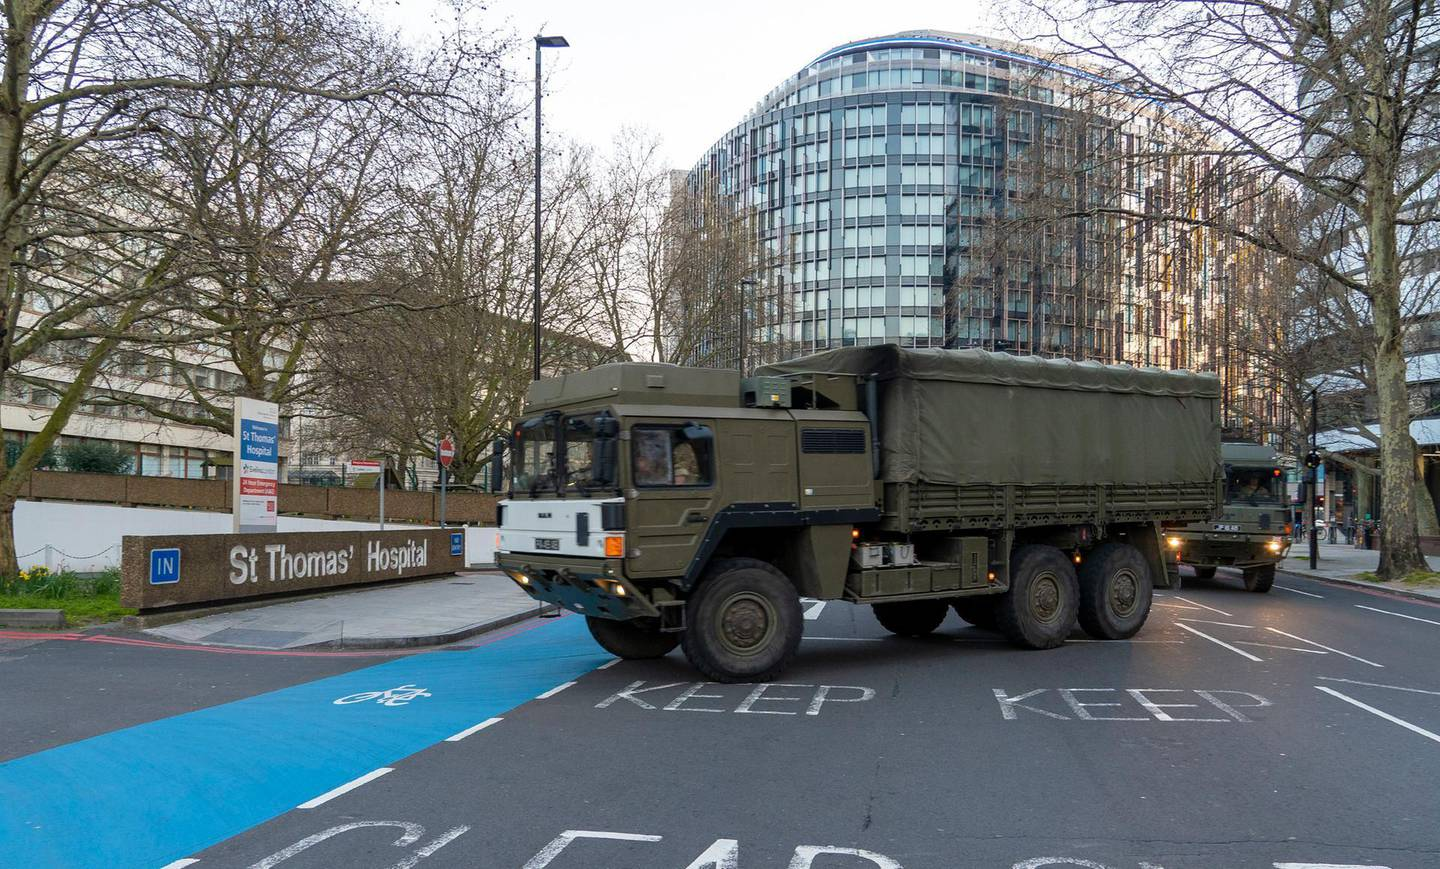 In this photo issued Tuesday March 24, 2020, Britain's Ministry of Defence, showing soldiers from Royal Logistics Corps delivering facemasks to St Thomas' Hospital in London, as part of the military force's efforts to support the government amidst the Coronavirus crisis, Tuesday March 24, 2020.  The forces collected some lorry loads of medical facemasks and drove overnight some two-hundred miles (over 300 Km) to deliver them to St. Thomas's Hospital.  The highly contagious COVID-19 coronavirus can cause moderate symptoms, but for some it can cause severe illness including pneumonia. (Dave Jenkins/MoD via AP)